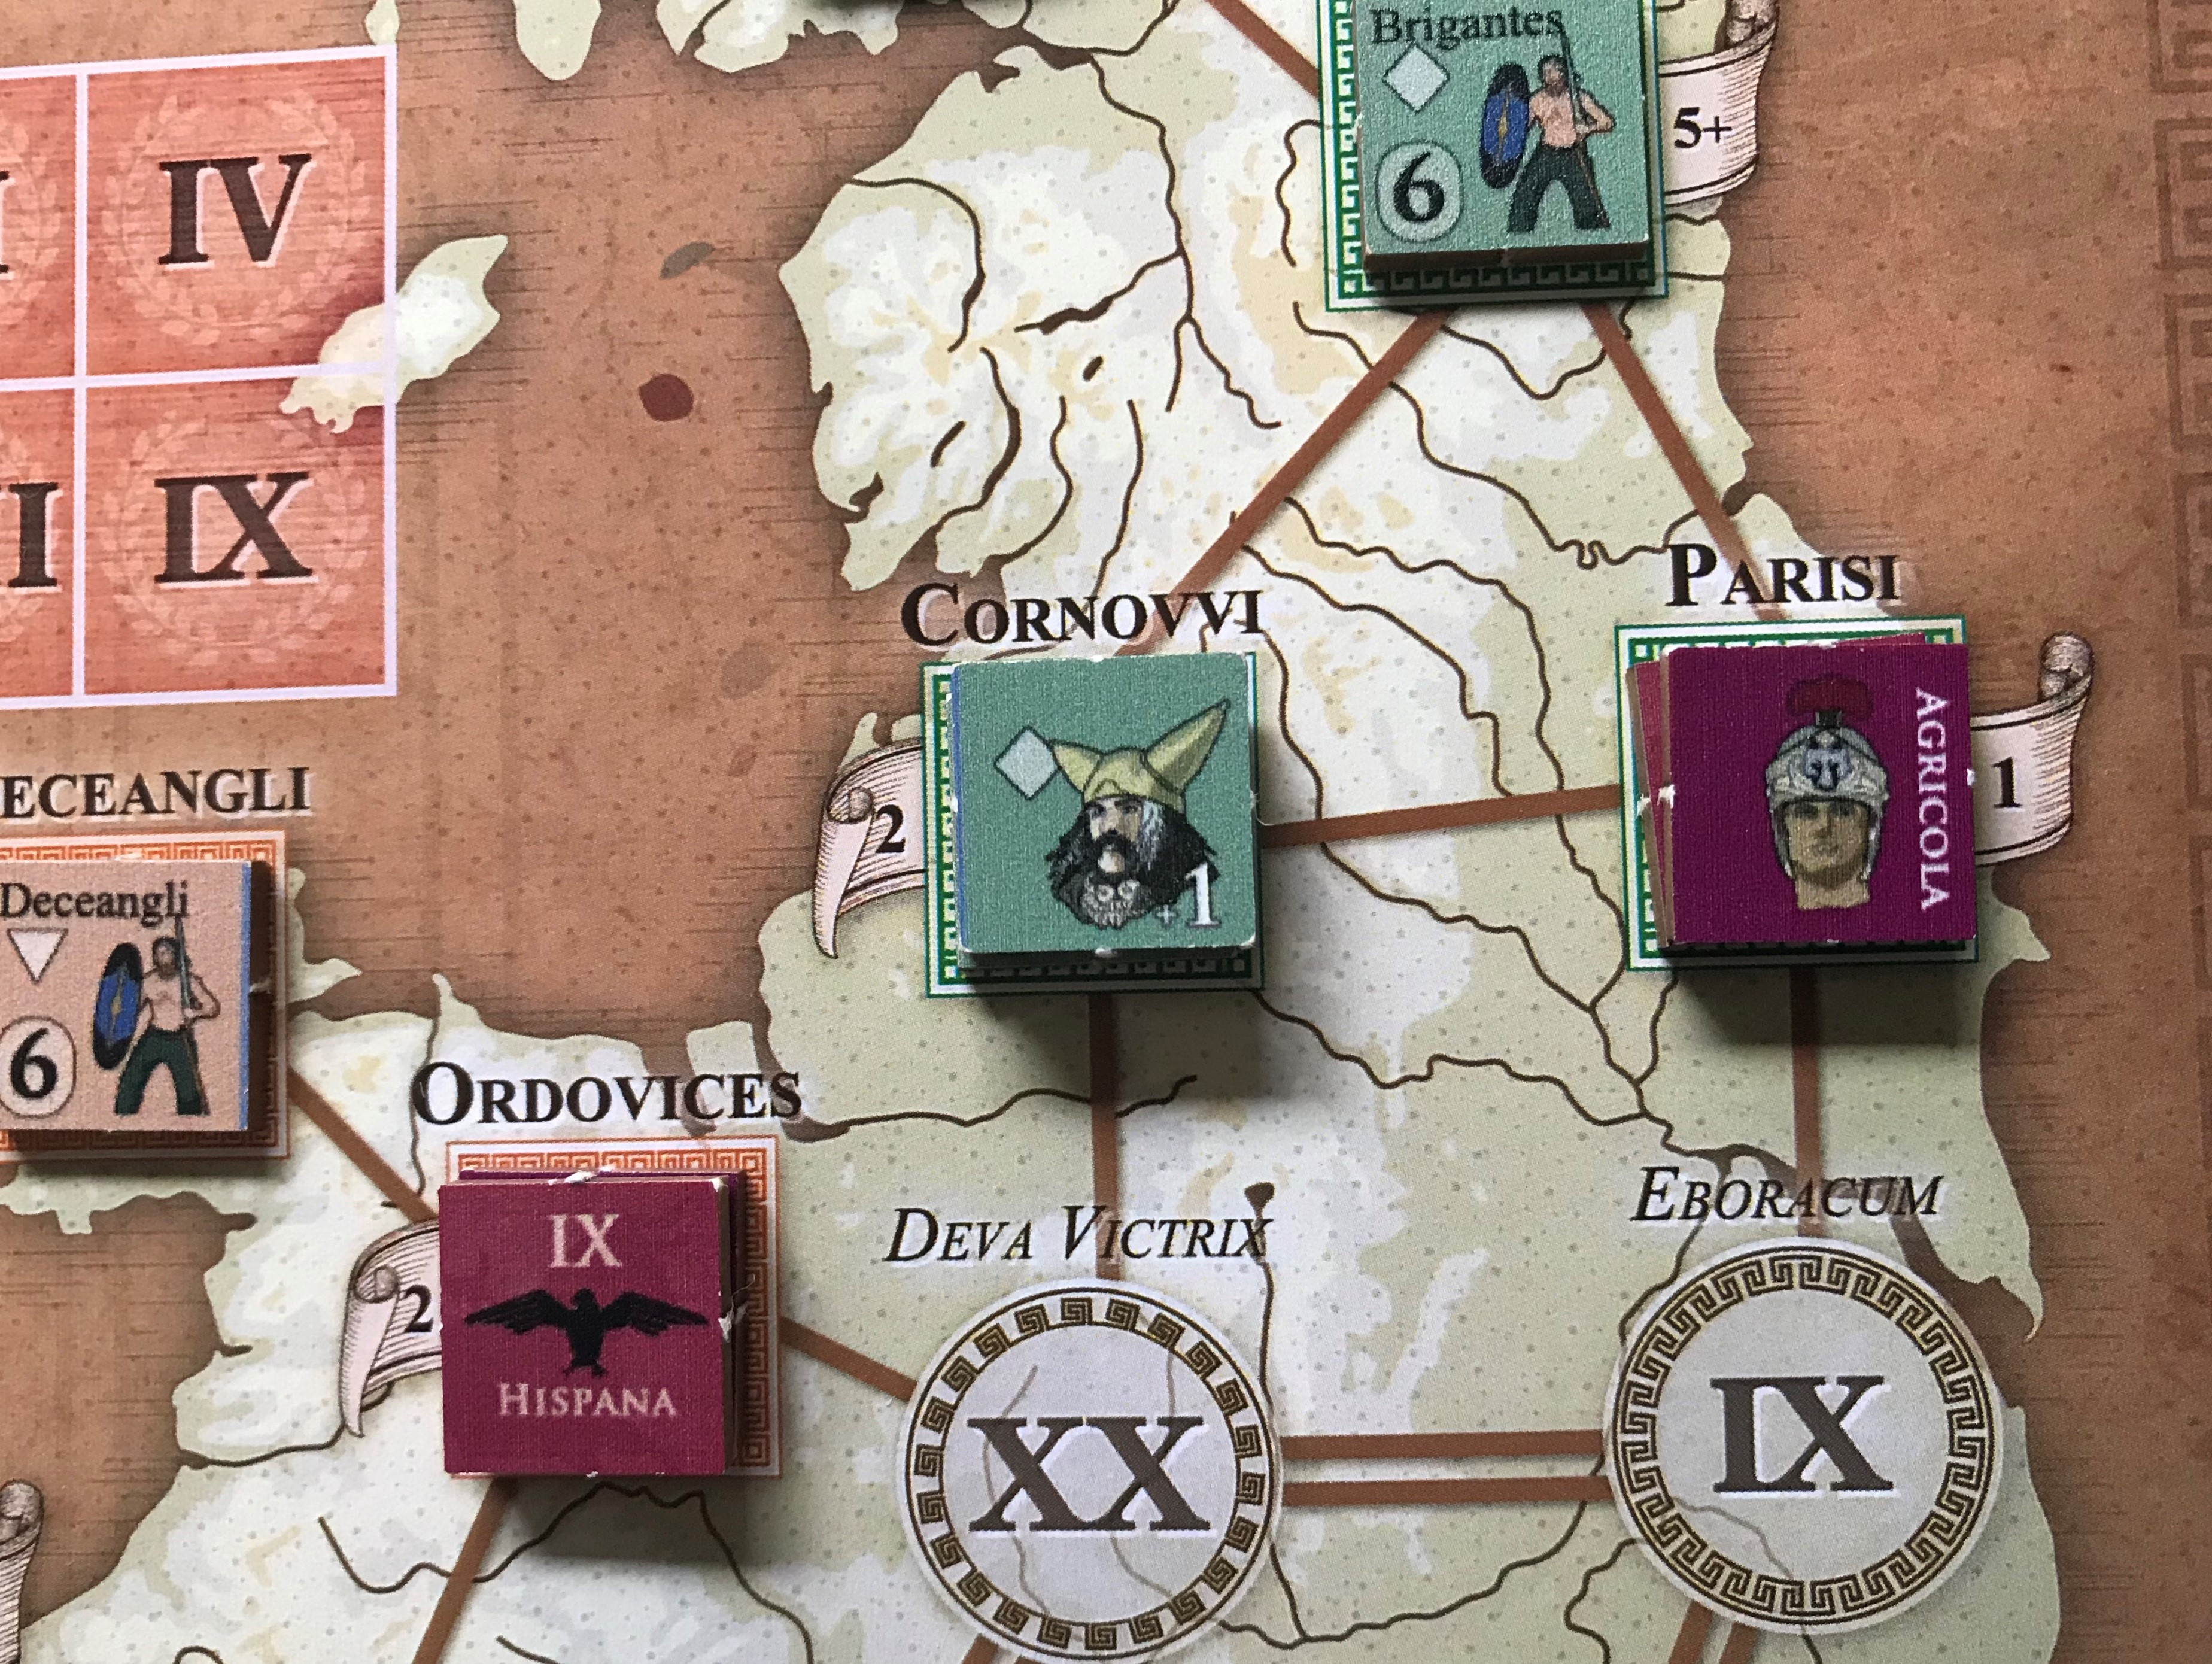 Agricola, Master of Britain from Hollandspiele – Action Point 5